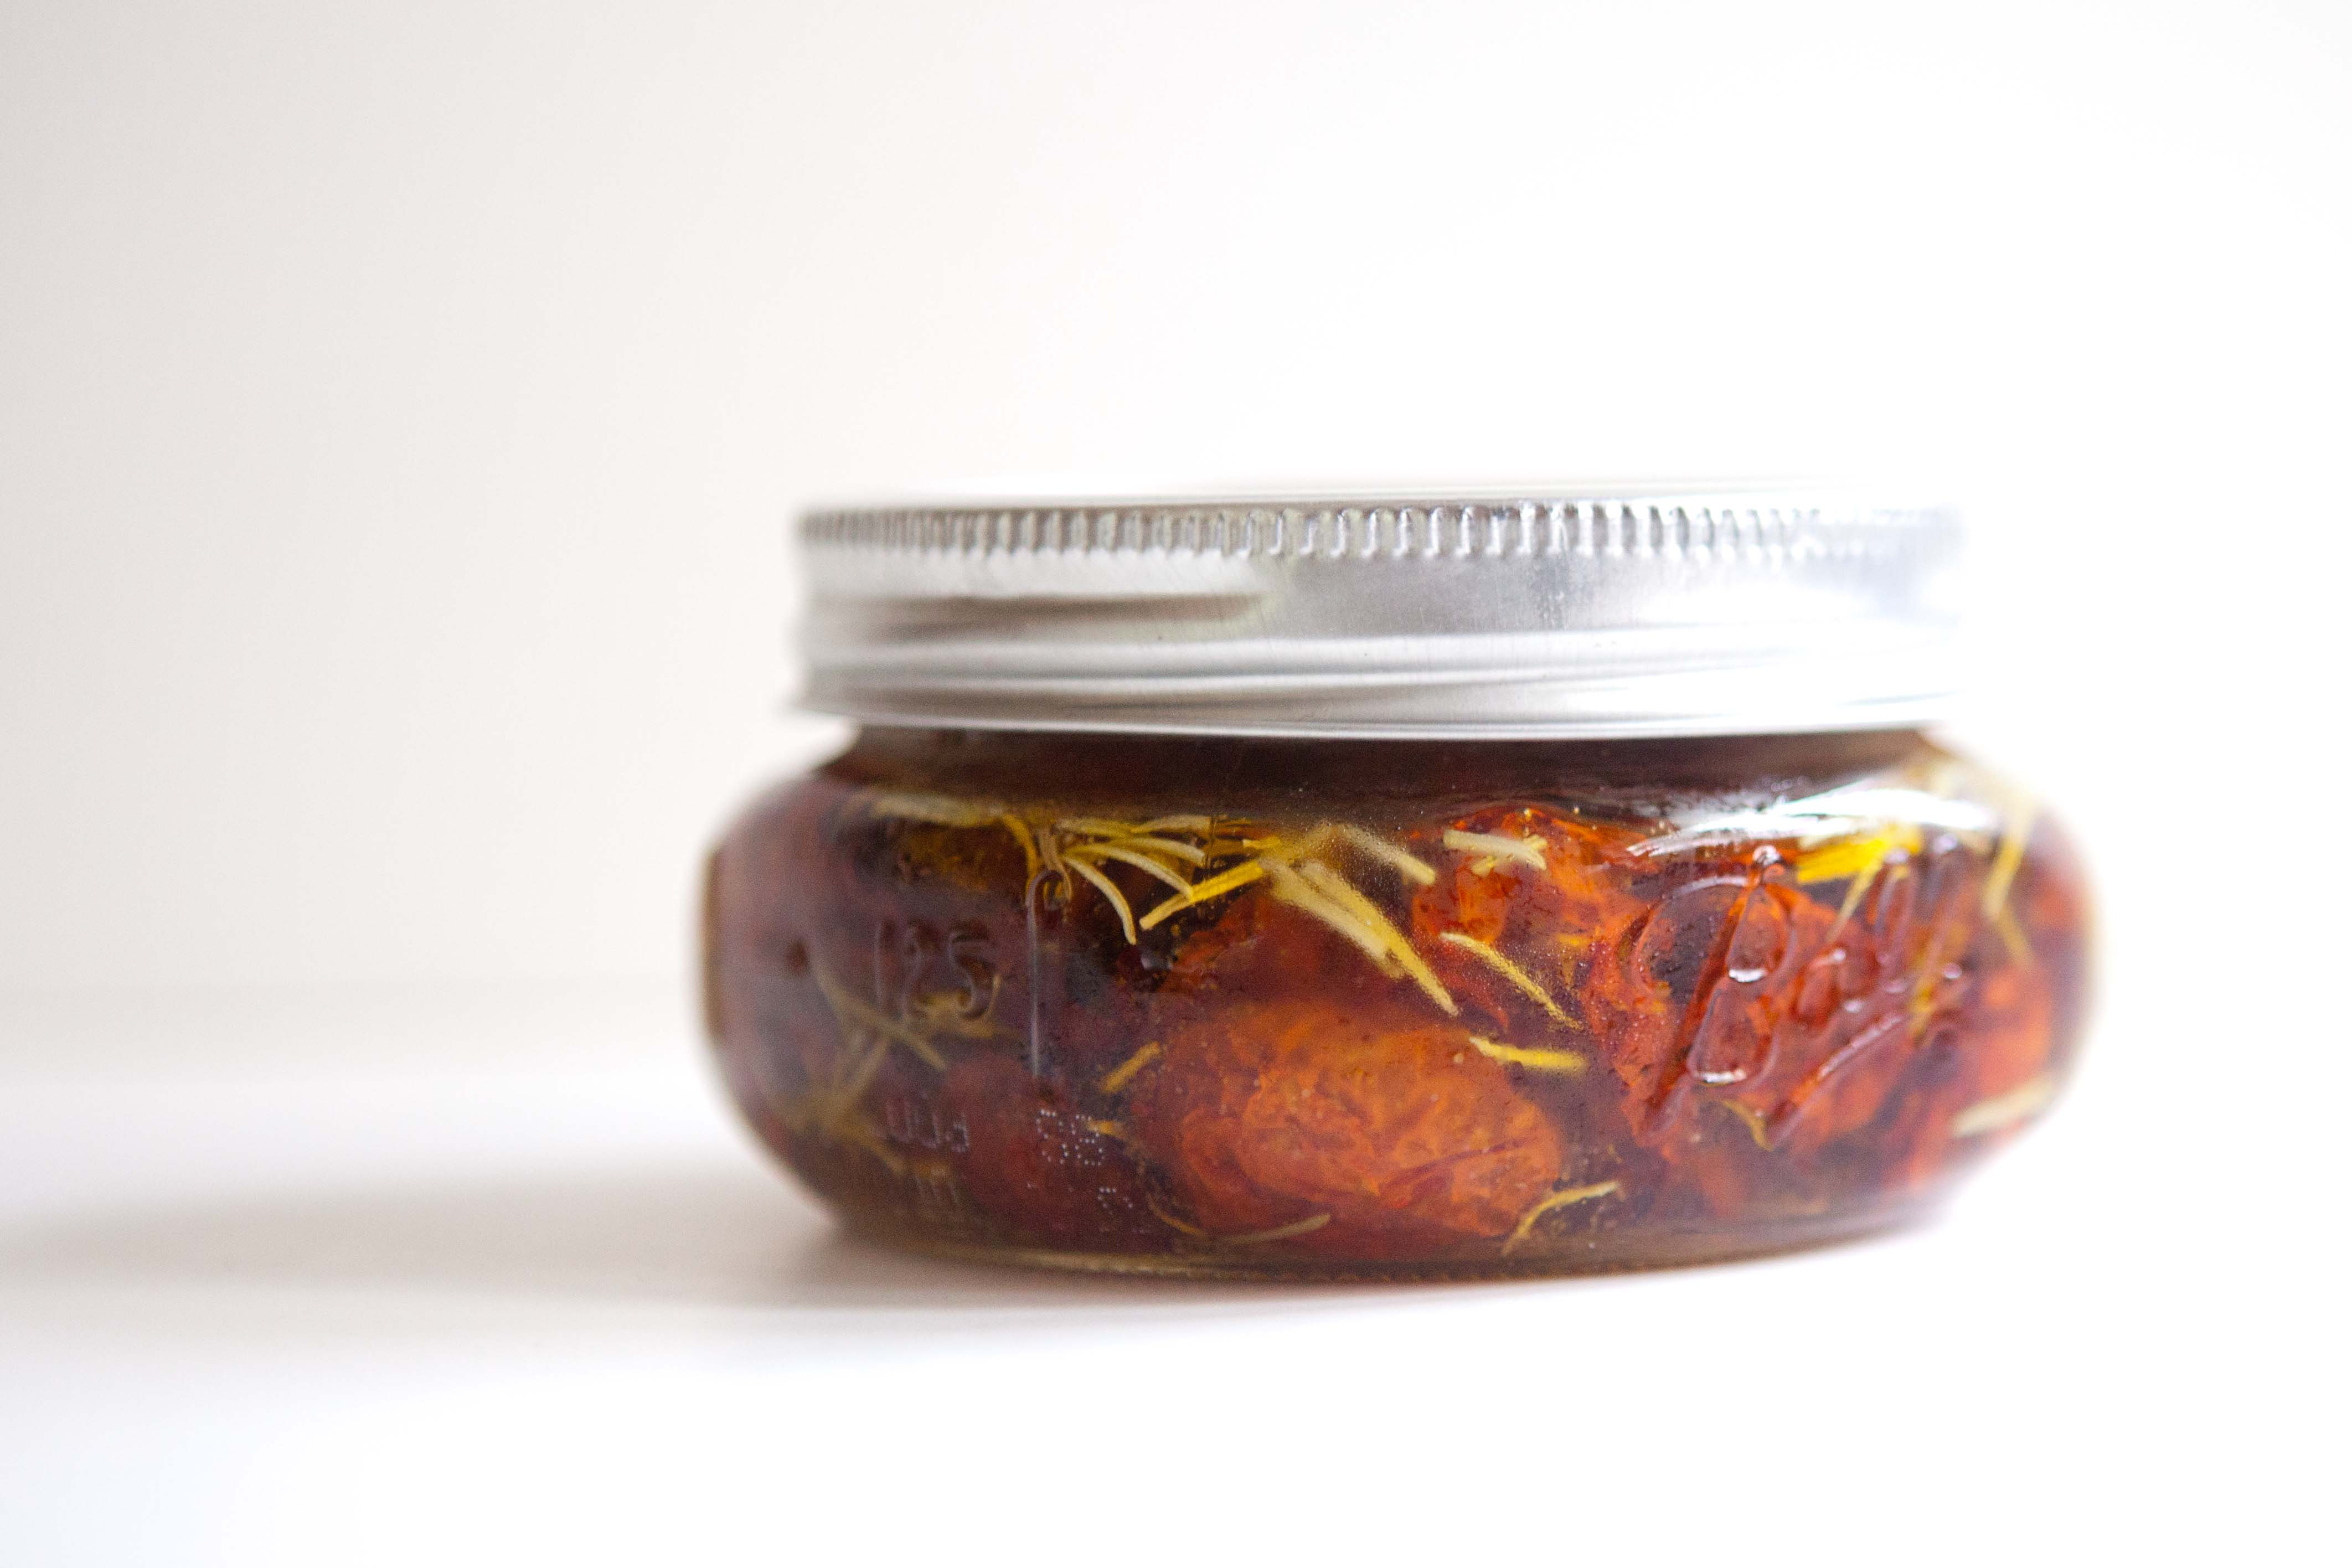 olive oil oven dried tomatoes |